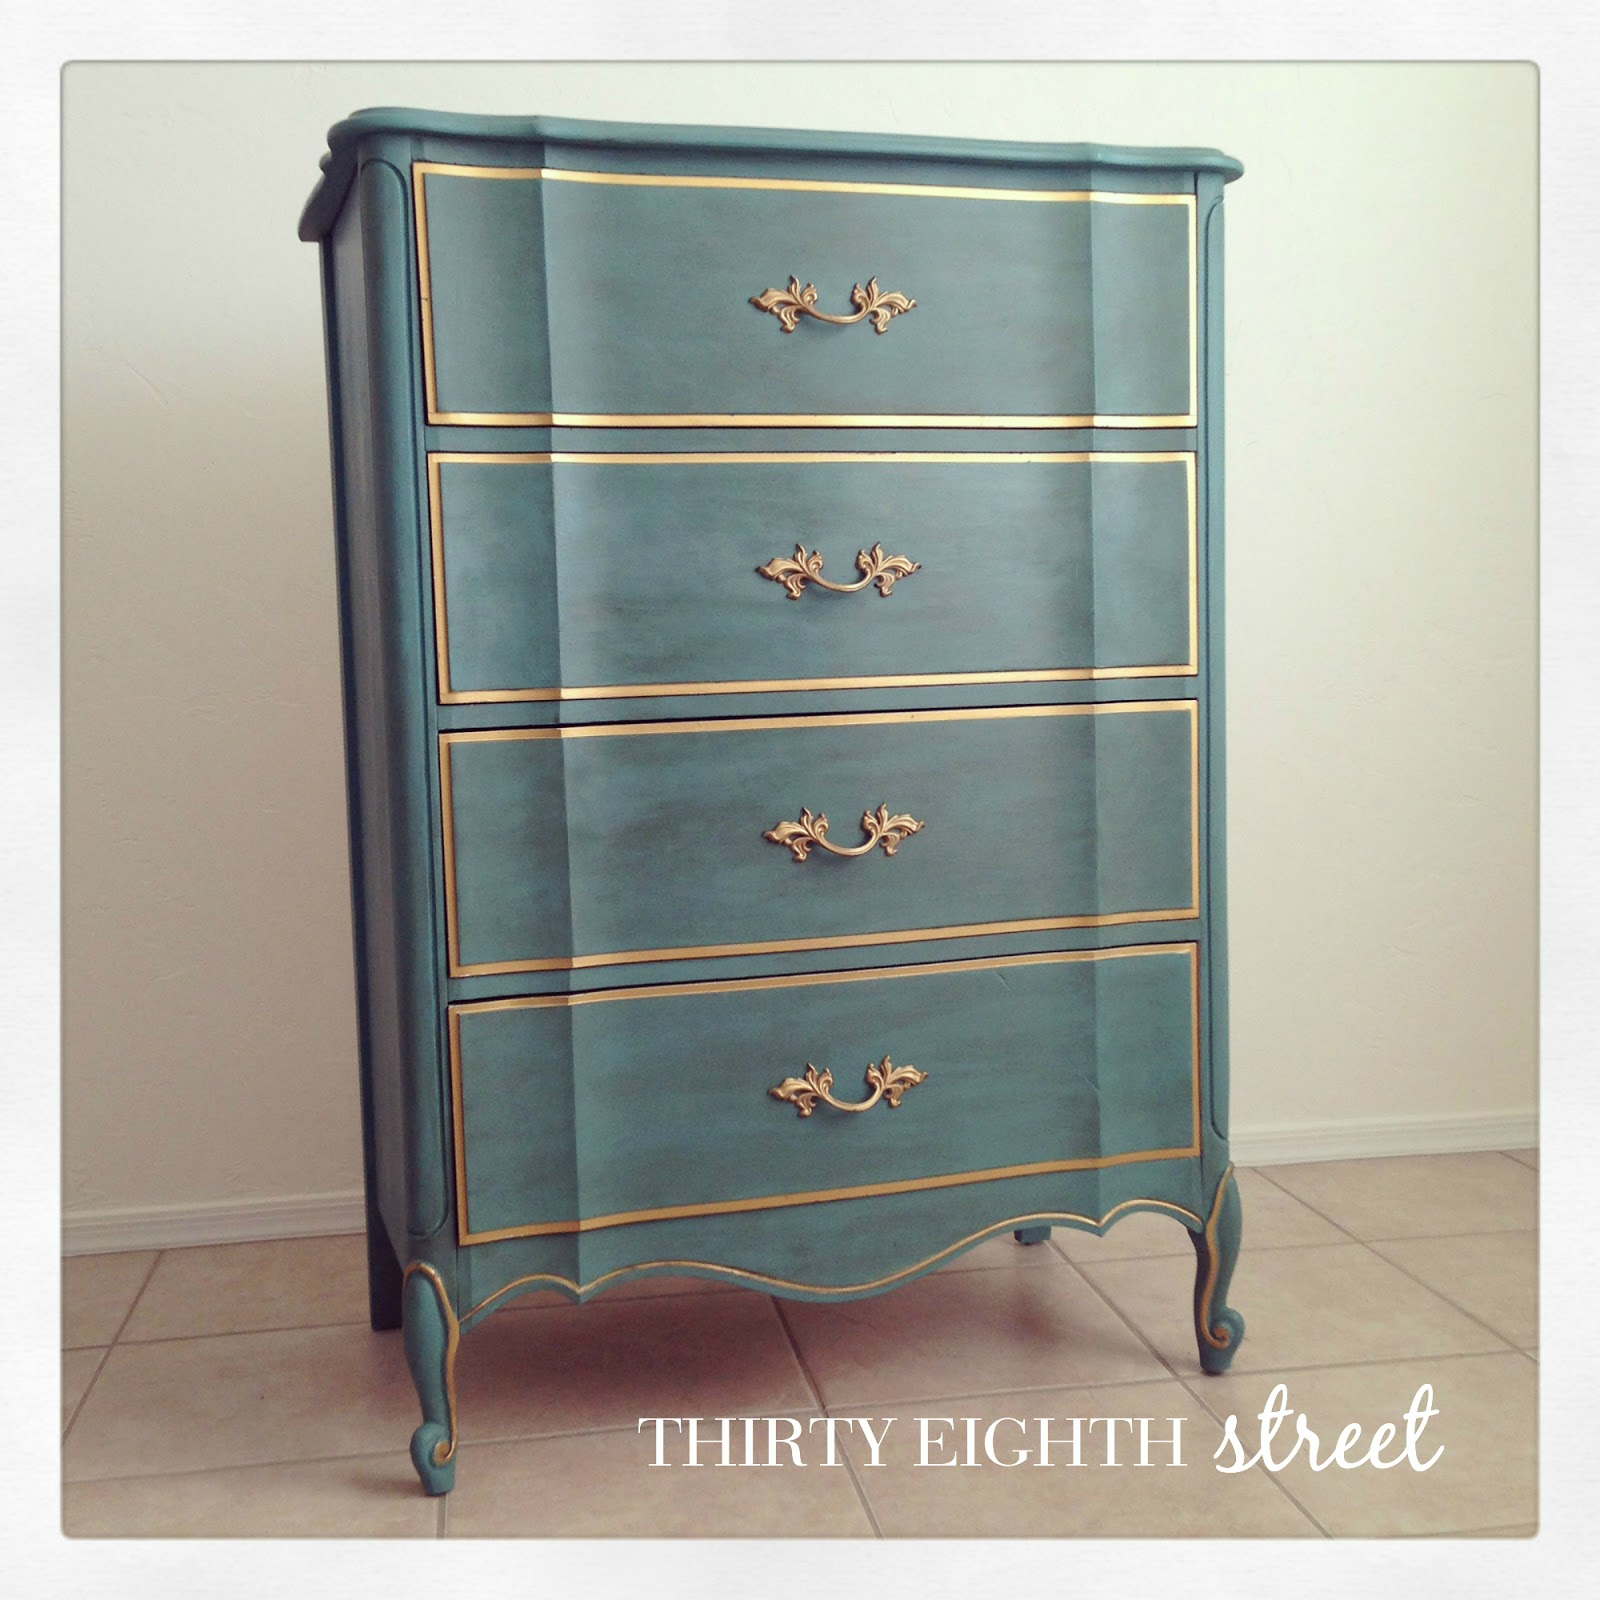 The Melinda Bedroom Collection Thirty Eighth Street